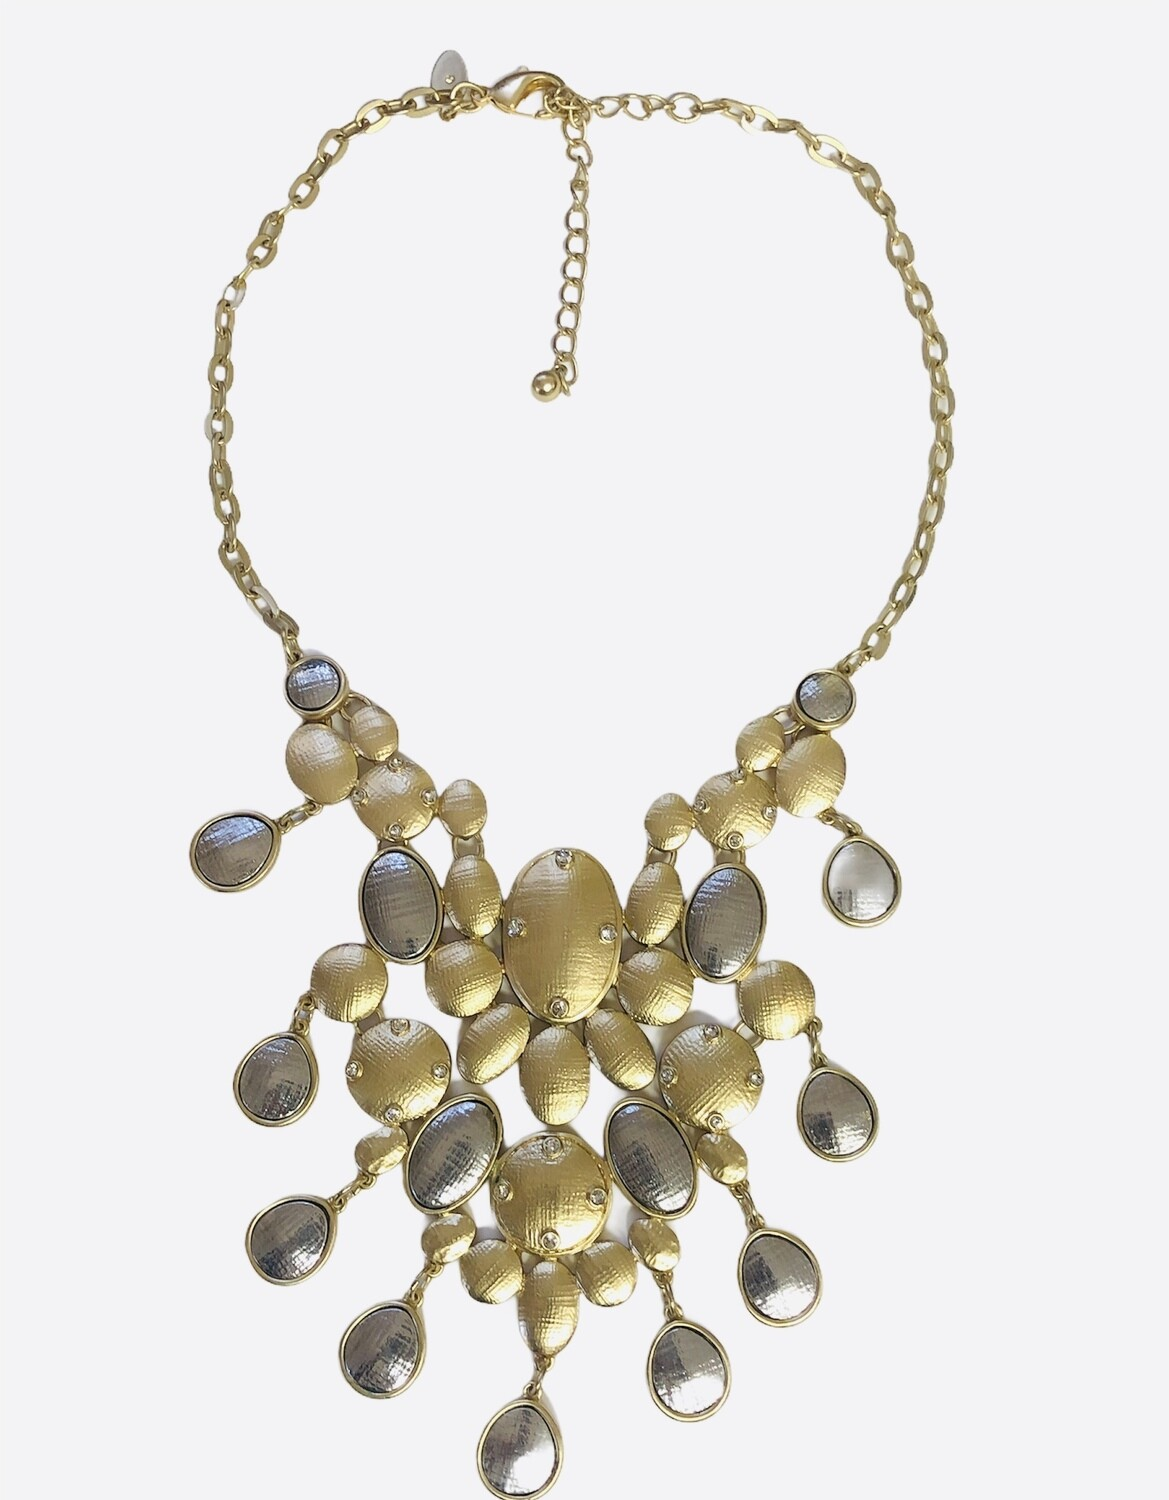 CHICO's Gold, Silver & Stone Chandelier Statement Necklace